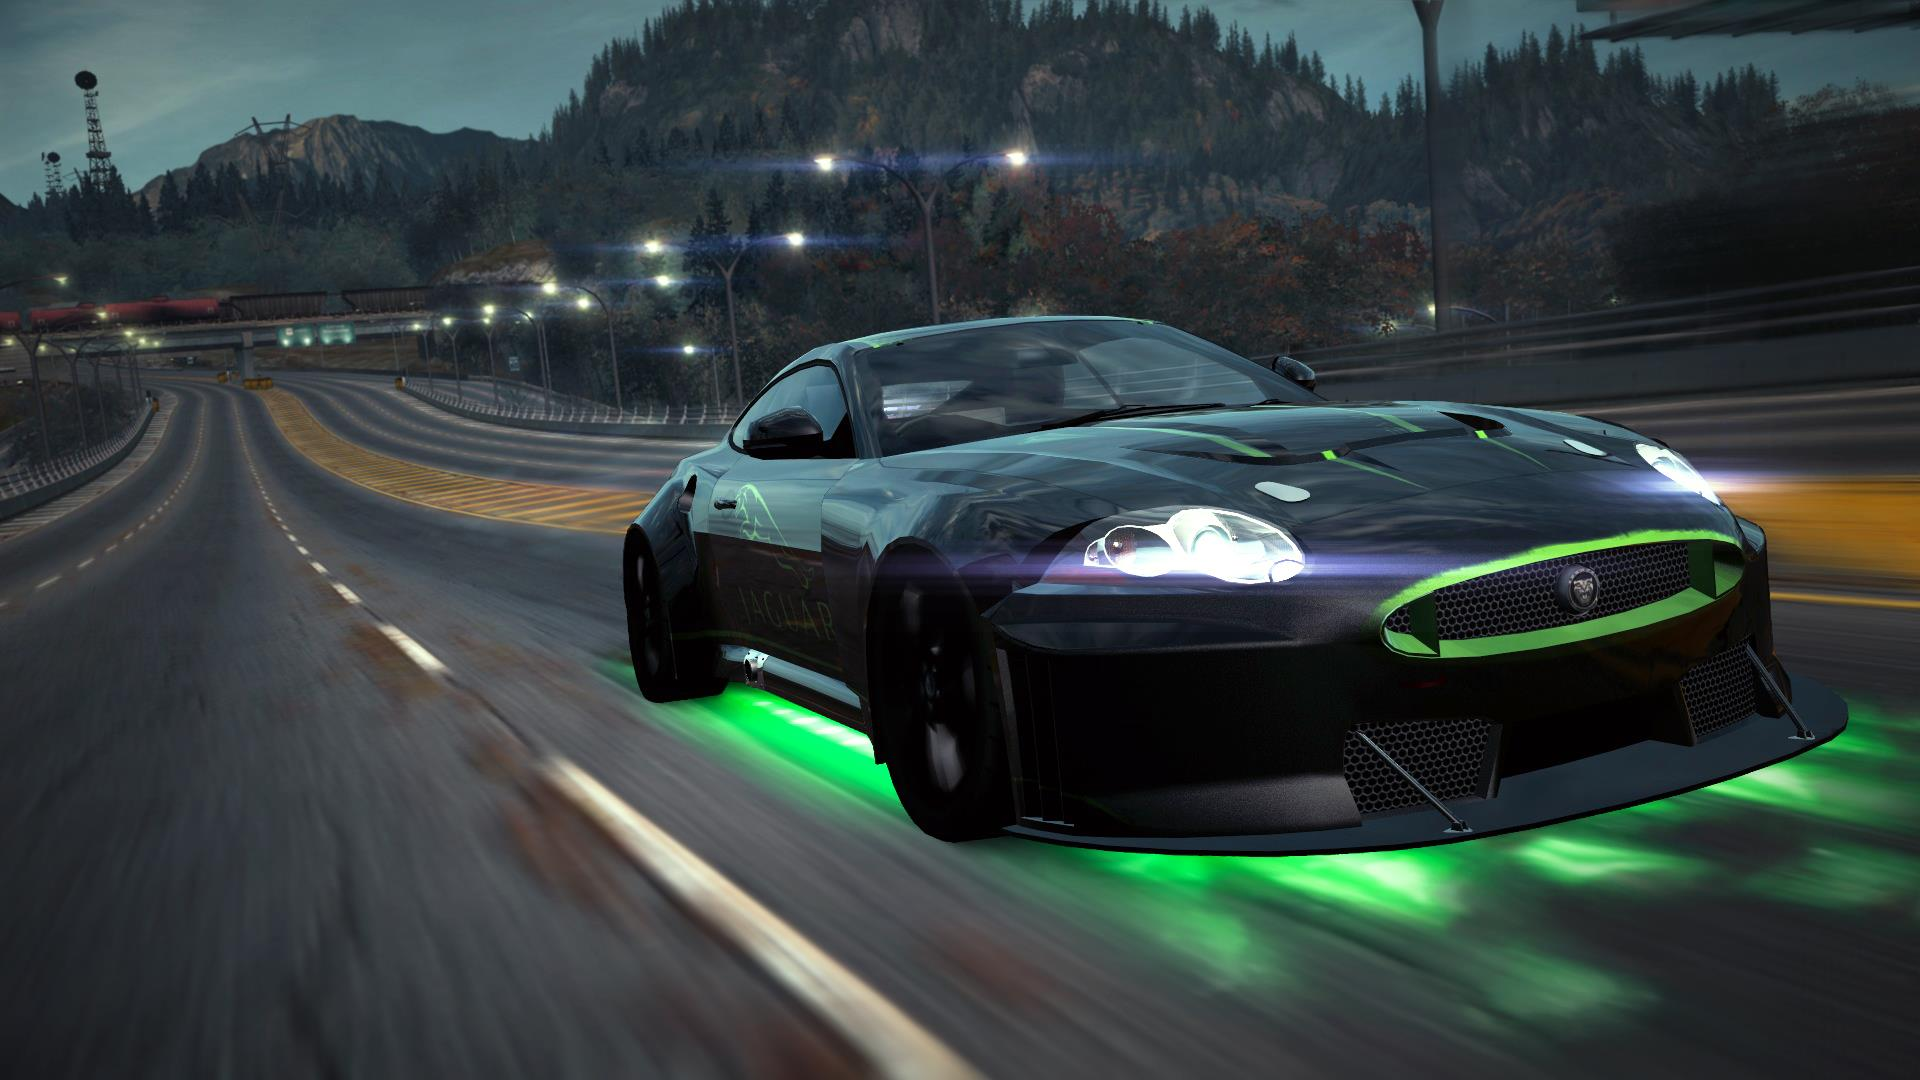 Cars | NFS World Wiki | FANDOM powered by Wikia